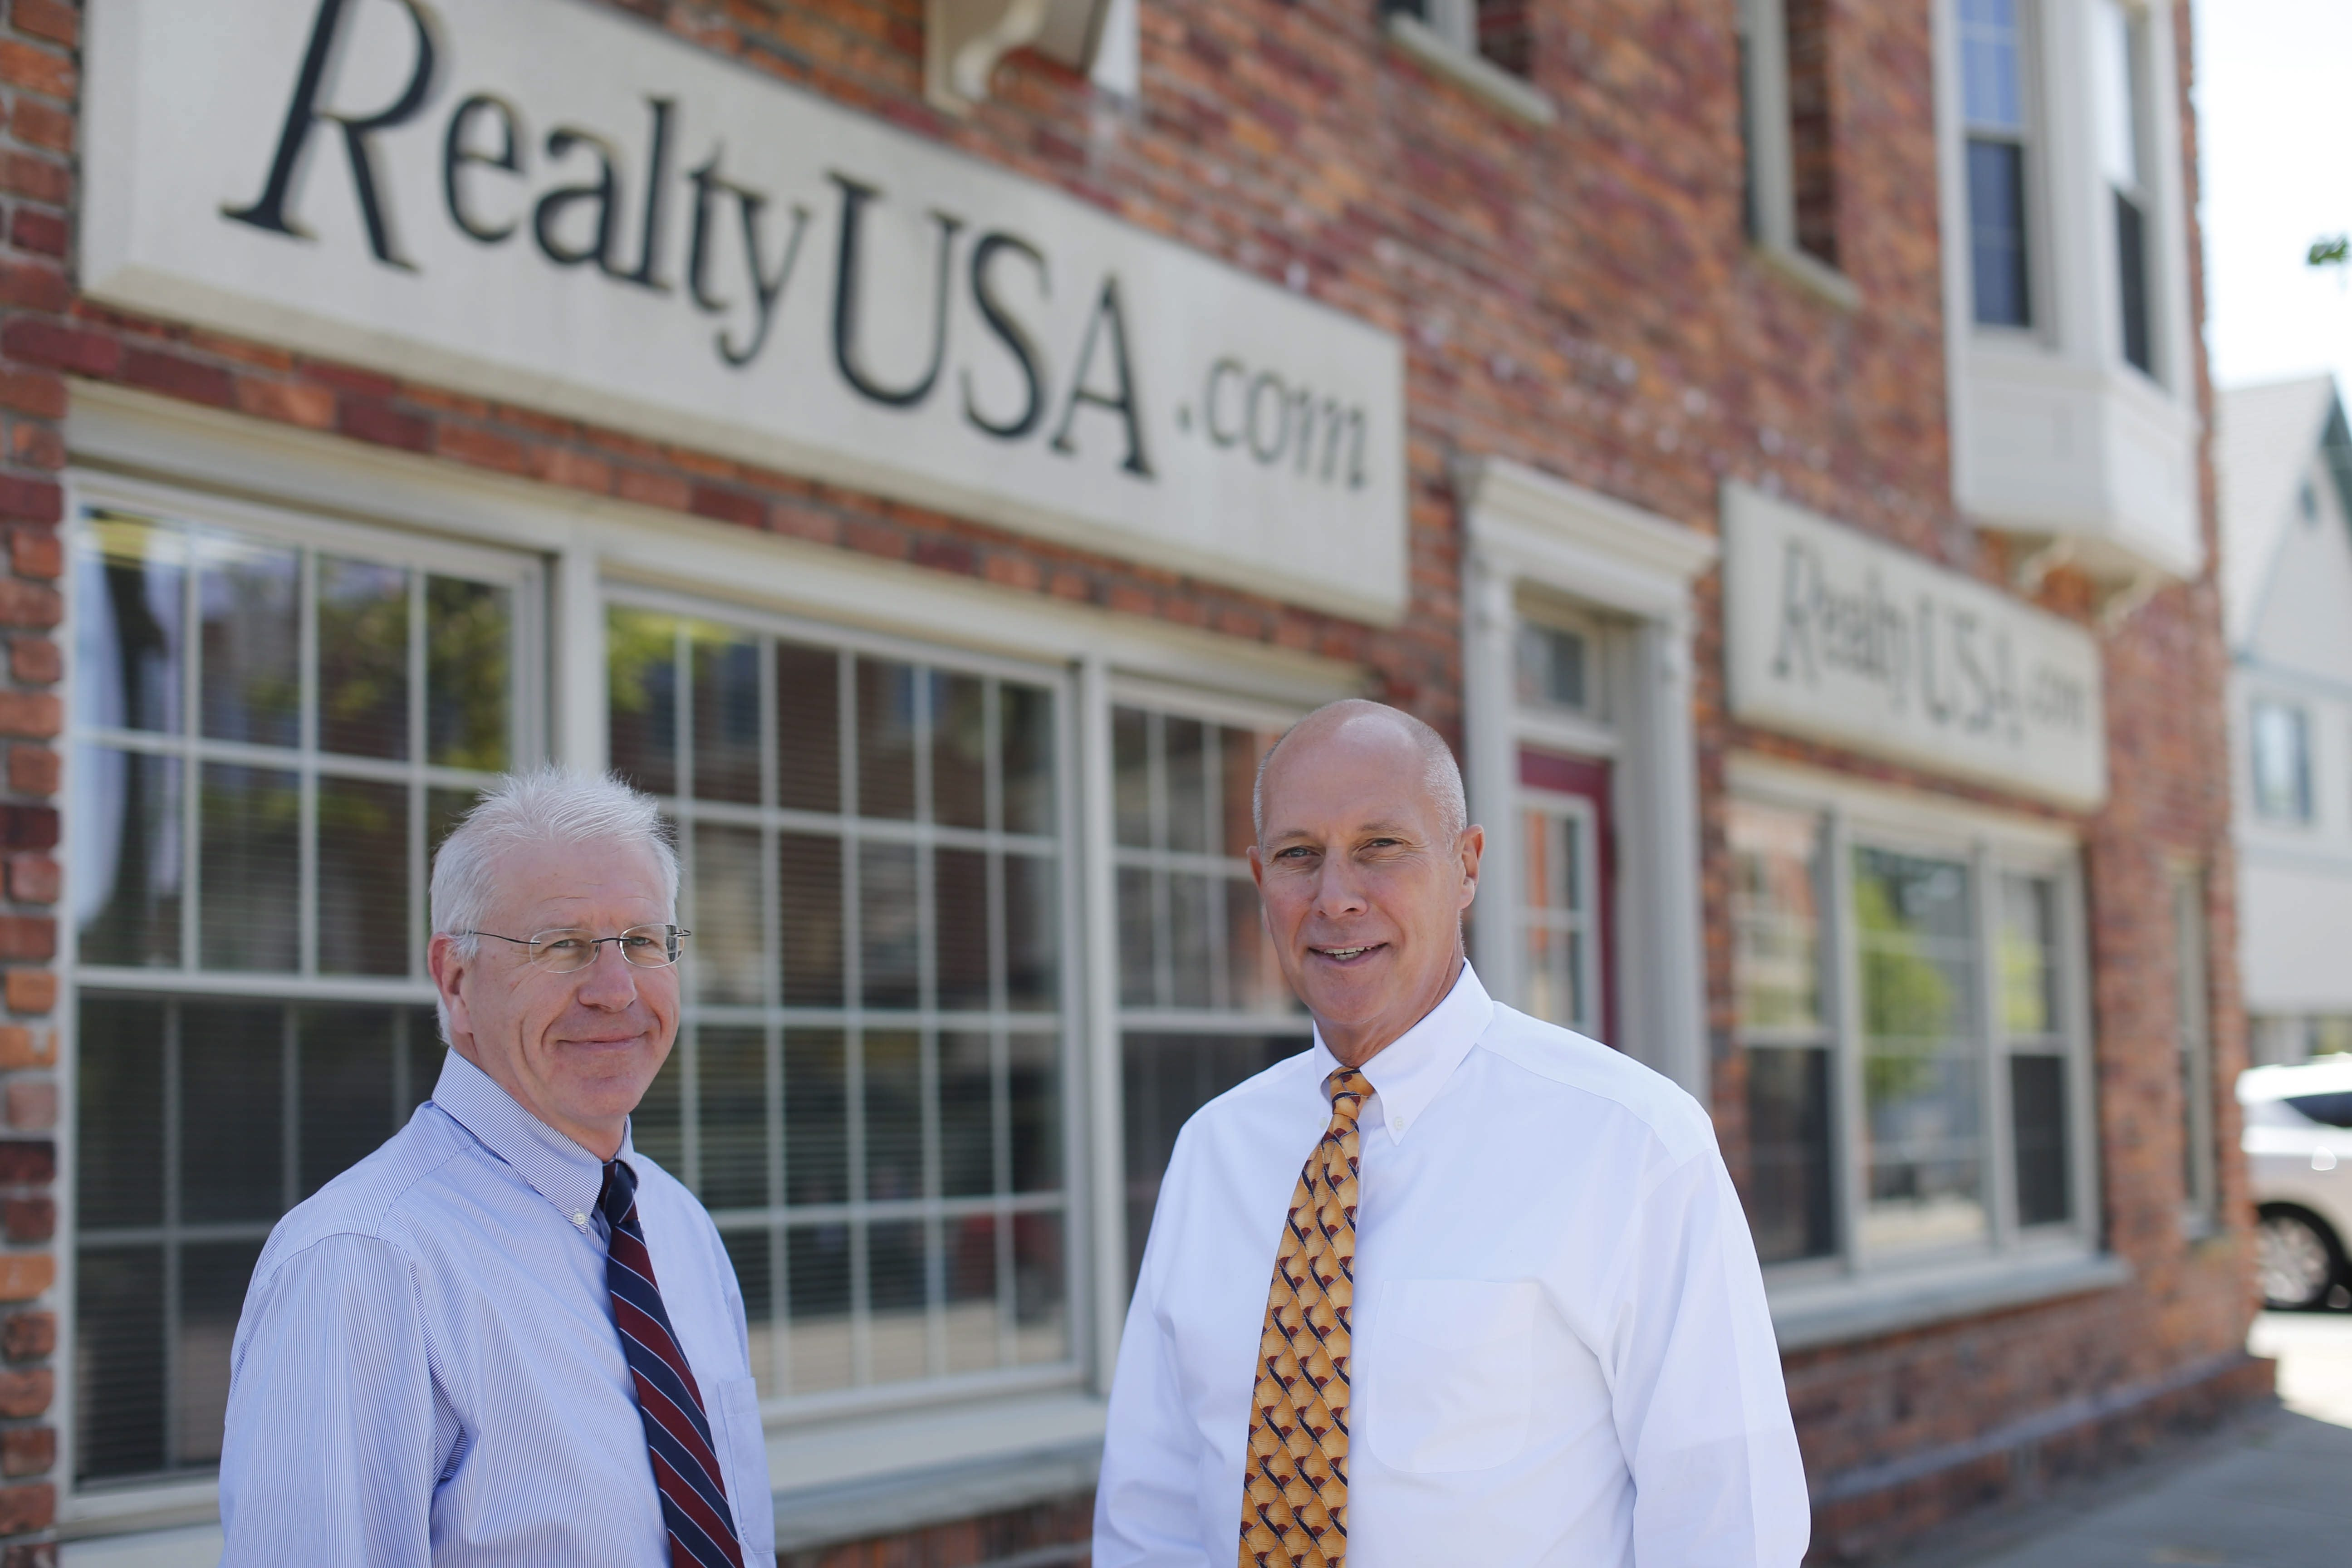 Curtis Neureuter, left, manager of the Orchard Park office of Realty USA, and President and CEO Merle L. Whitehead, seen at their Orchard Park office, lead the largest independent real estate brokerage firm in the state.